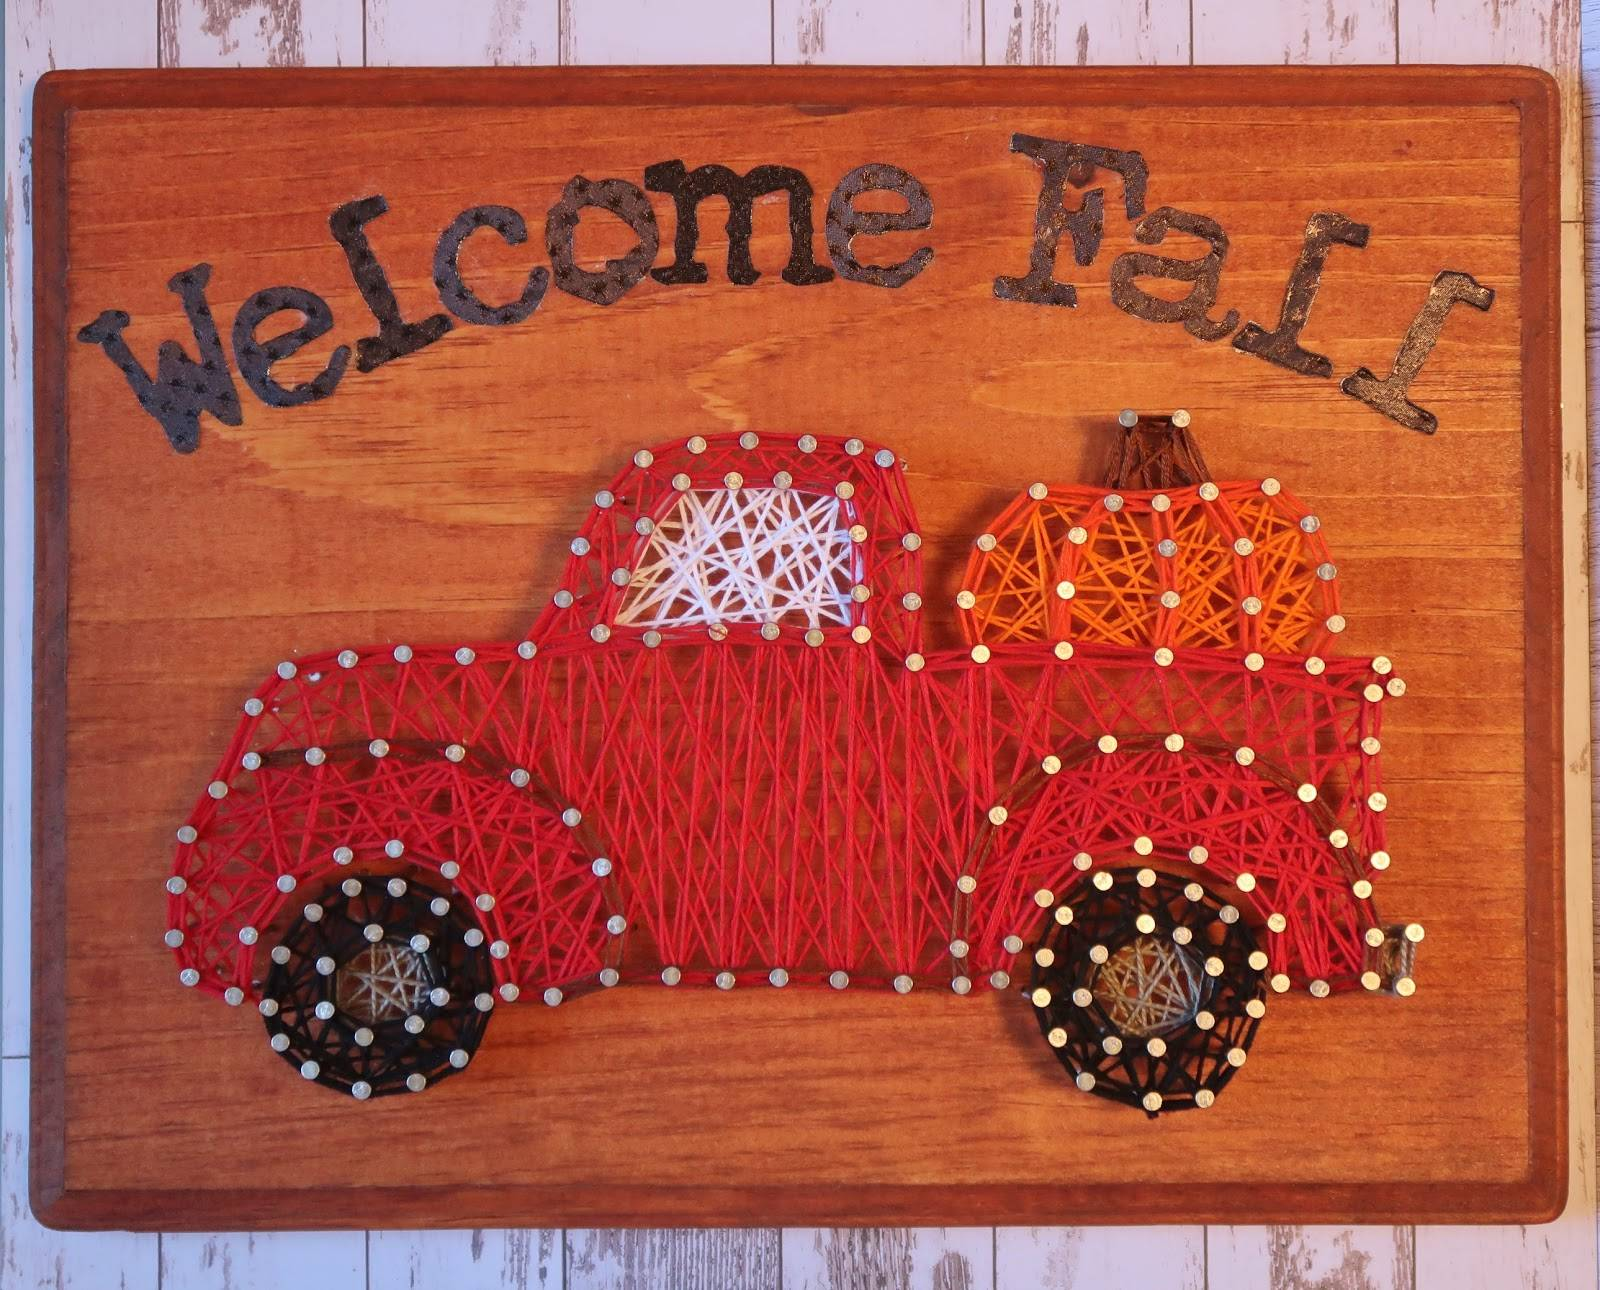 Wel e Fall String Art Pickup Truck 0919 002 JPG